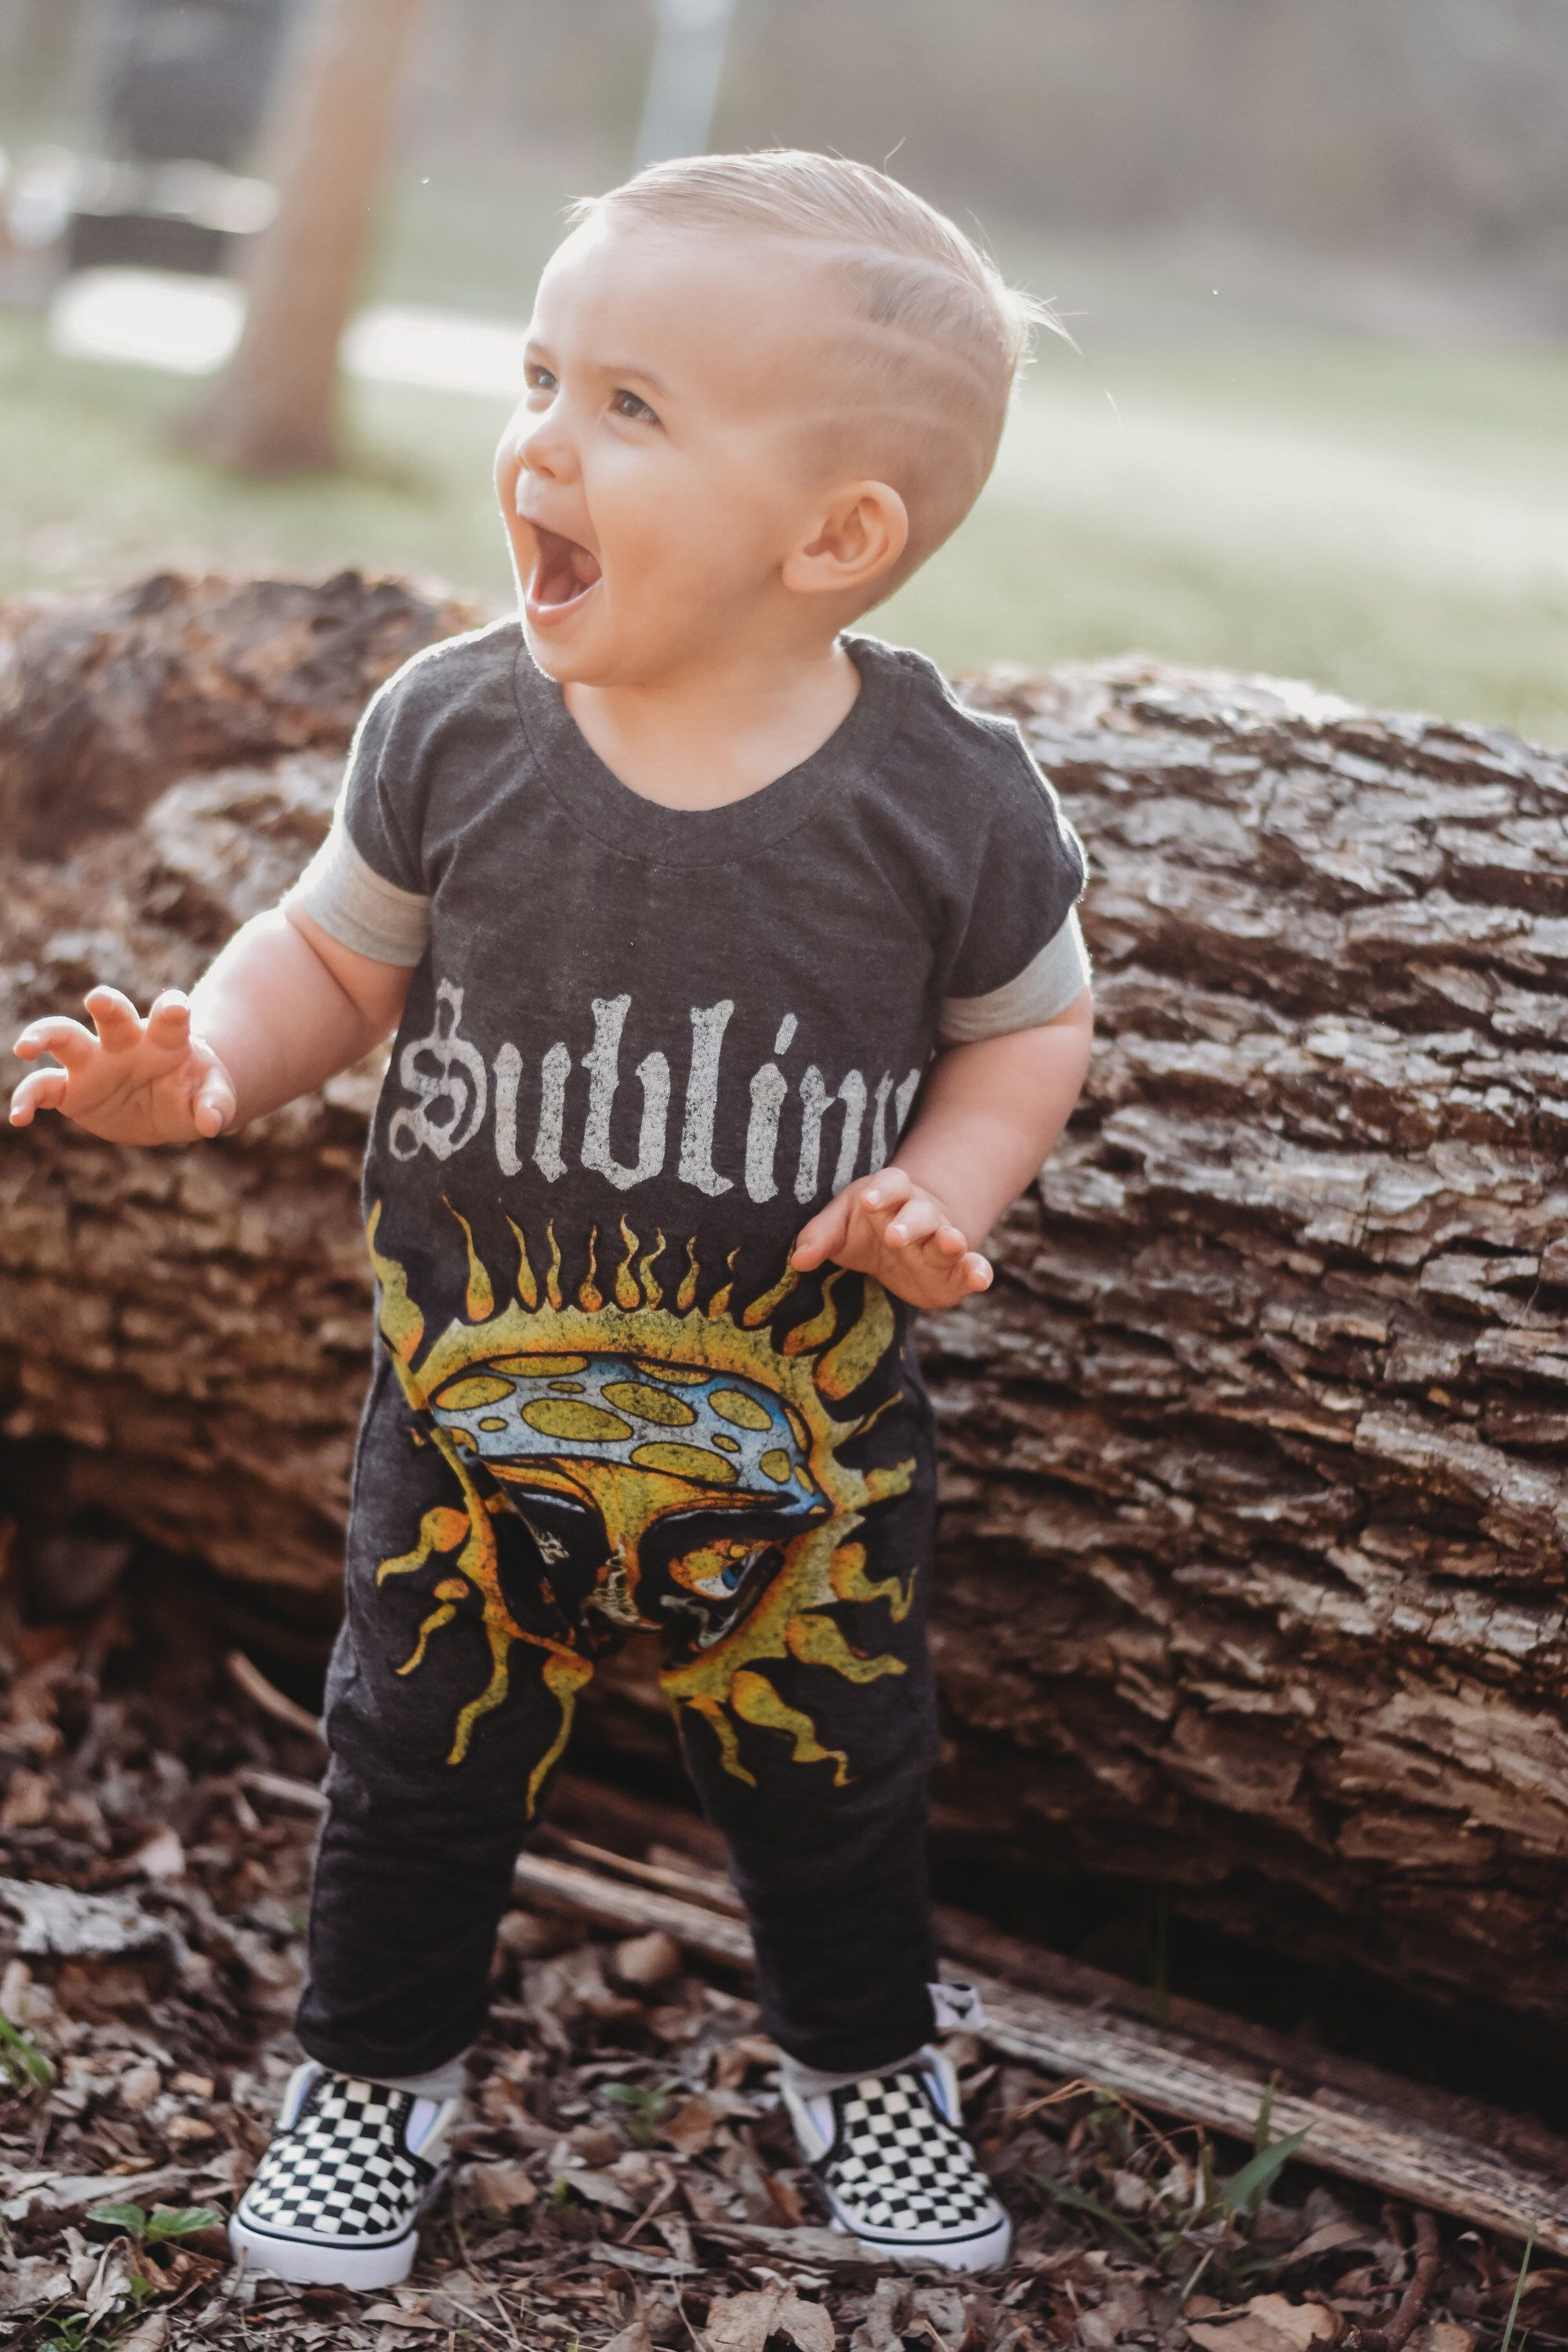 Baby rompers, handmade baby clothes, baby bodysuit, custom baby clothes, trendy toddler clothes, rock music, punk is part of Baby Clothes Punk - One of a kind custom Rompers are the perfect individuality statement!! There are so many amazing Tees that are just waiting to be turned into something awesome for your little guy or babe! Rompers can be made into sizes 1218m through 34T  These run true to size in our opinion   All styles are neck entry with an elastic neck to allow for way in and off  NO SNAPS  Finished with a cuff this little outfit has always been a show stopper  Machine washable with like colors  Professionally Serged for strength and durability  The first image is for the romper to be made, the following pictures are samples of romper styles to choose from   ALL T SHIRT ROMPERS ARE MADE FROM PURCHASED LICENSED PRODUCTS AND HANDMADE INTO ROMPERS  +++If you have a special Tee you would like turned into a Romper I can do that as well  Message me for details on how to send me your Tee  Rompers are professionally serged for durability and have corresponding cuffs added to sleeves and legs  Turn around time is 12 weeks +++ These Rompers are made from cotton blend Tees  They may shrink some, please order sizes accordingly  We suggest when washed that you lay flat to dry to prevent shrinkage and help avoid fading  Red and Black are tricky colors to keep bright, please be advised  +++For Custom orders Tee you wish to send to me to have made into a romper should be adult LXL with image as middle center as possible  Please message me with questions you have about a tee you would like to send and I will give you the details on how to proceed ++++ Romper Size Chart Newborn  Shoulder to crotch13in Width 9in 06m Shoulder to crotch 14in Width9 5in 612m Shoulder to crotch 15 5in Width 10 5in 912m Shoulder to crotch 17in Width 11in 1218m Shoulder to crotch 18in Width12 5in 1824m Shoulder to crotch 19in Width 13in 23T Shoulder to crotch 21in Width 14in 34T Shoulder to cr